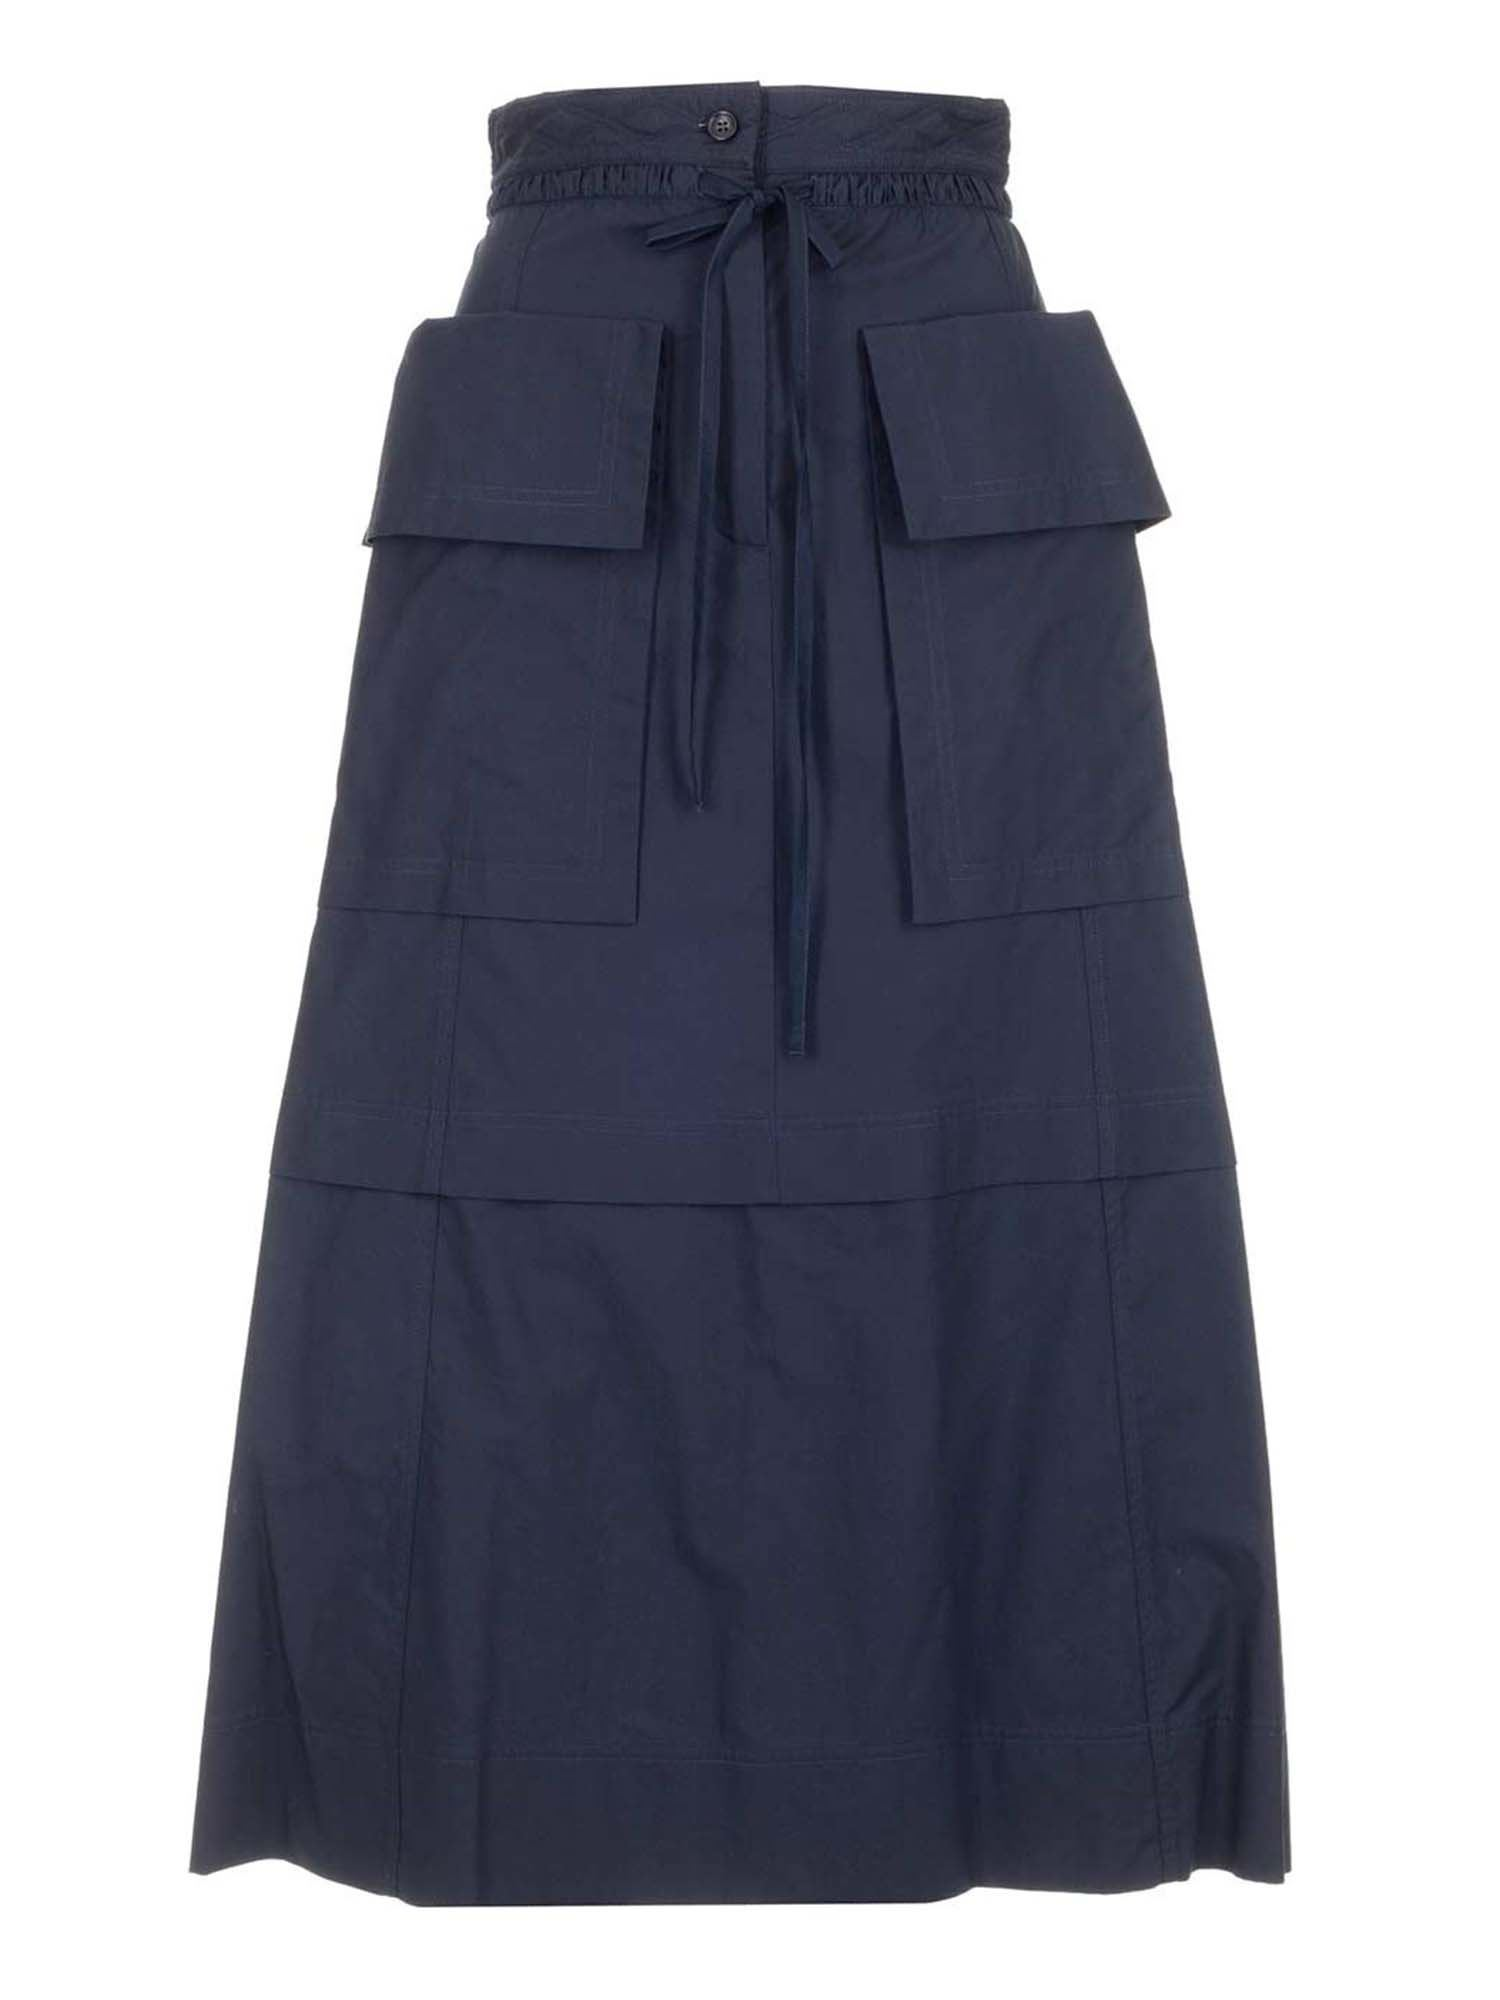 See By Chloé Midi skirts MAXI CARGO POCKETS SKIRT IN BLUE